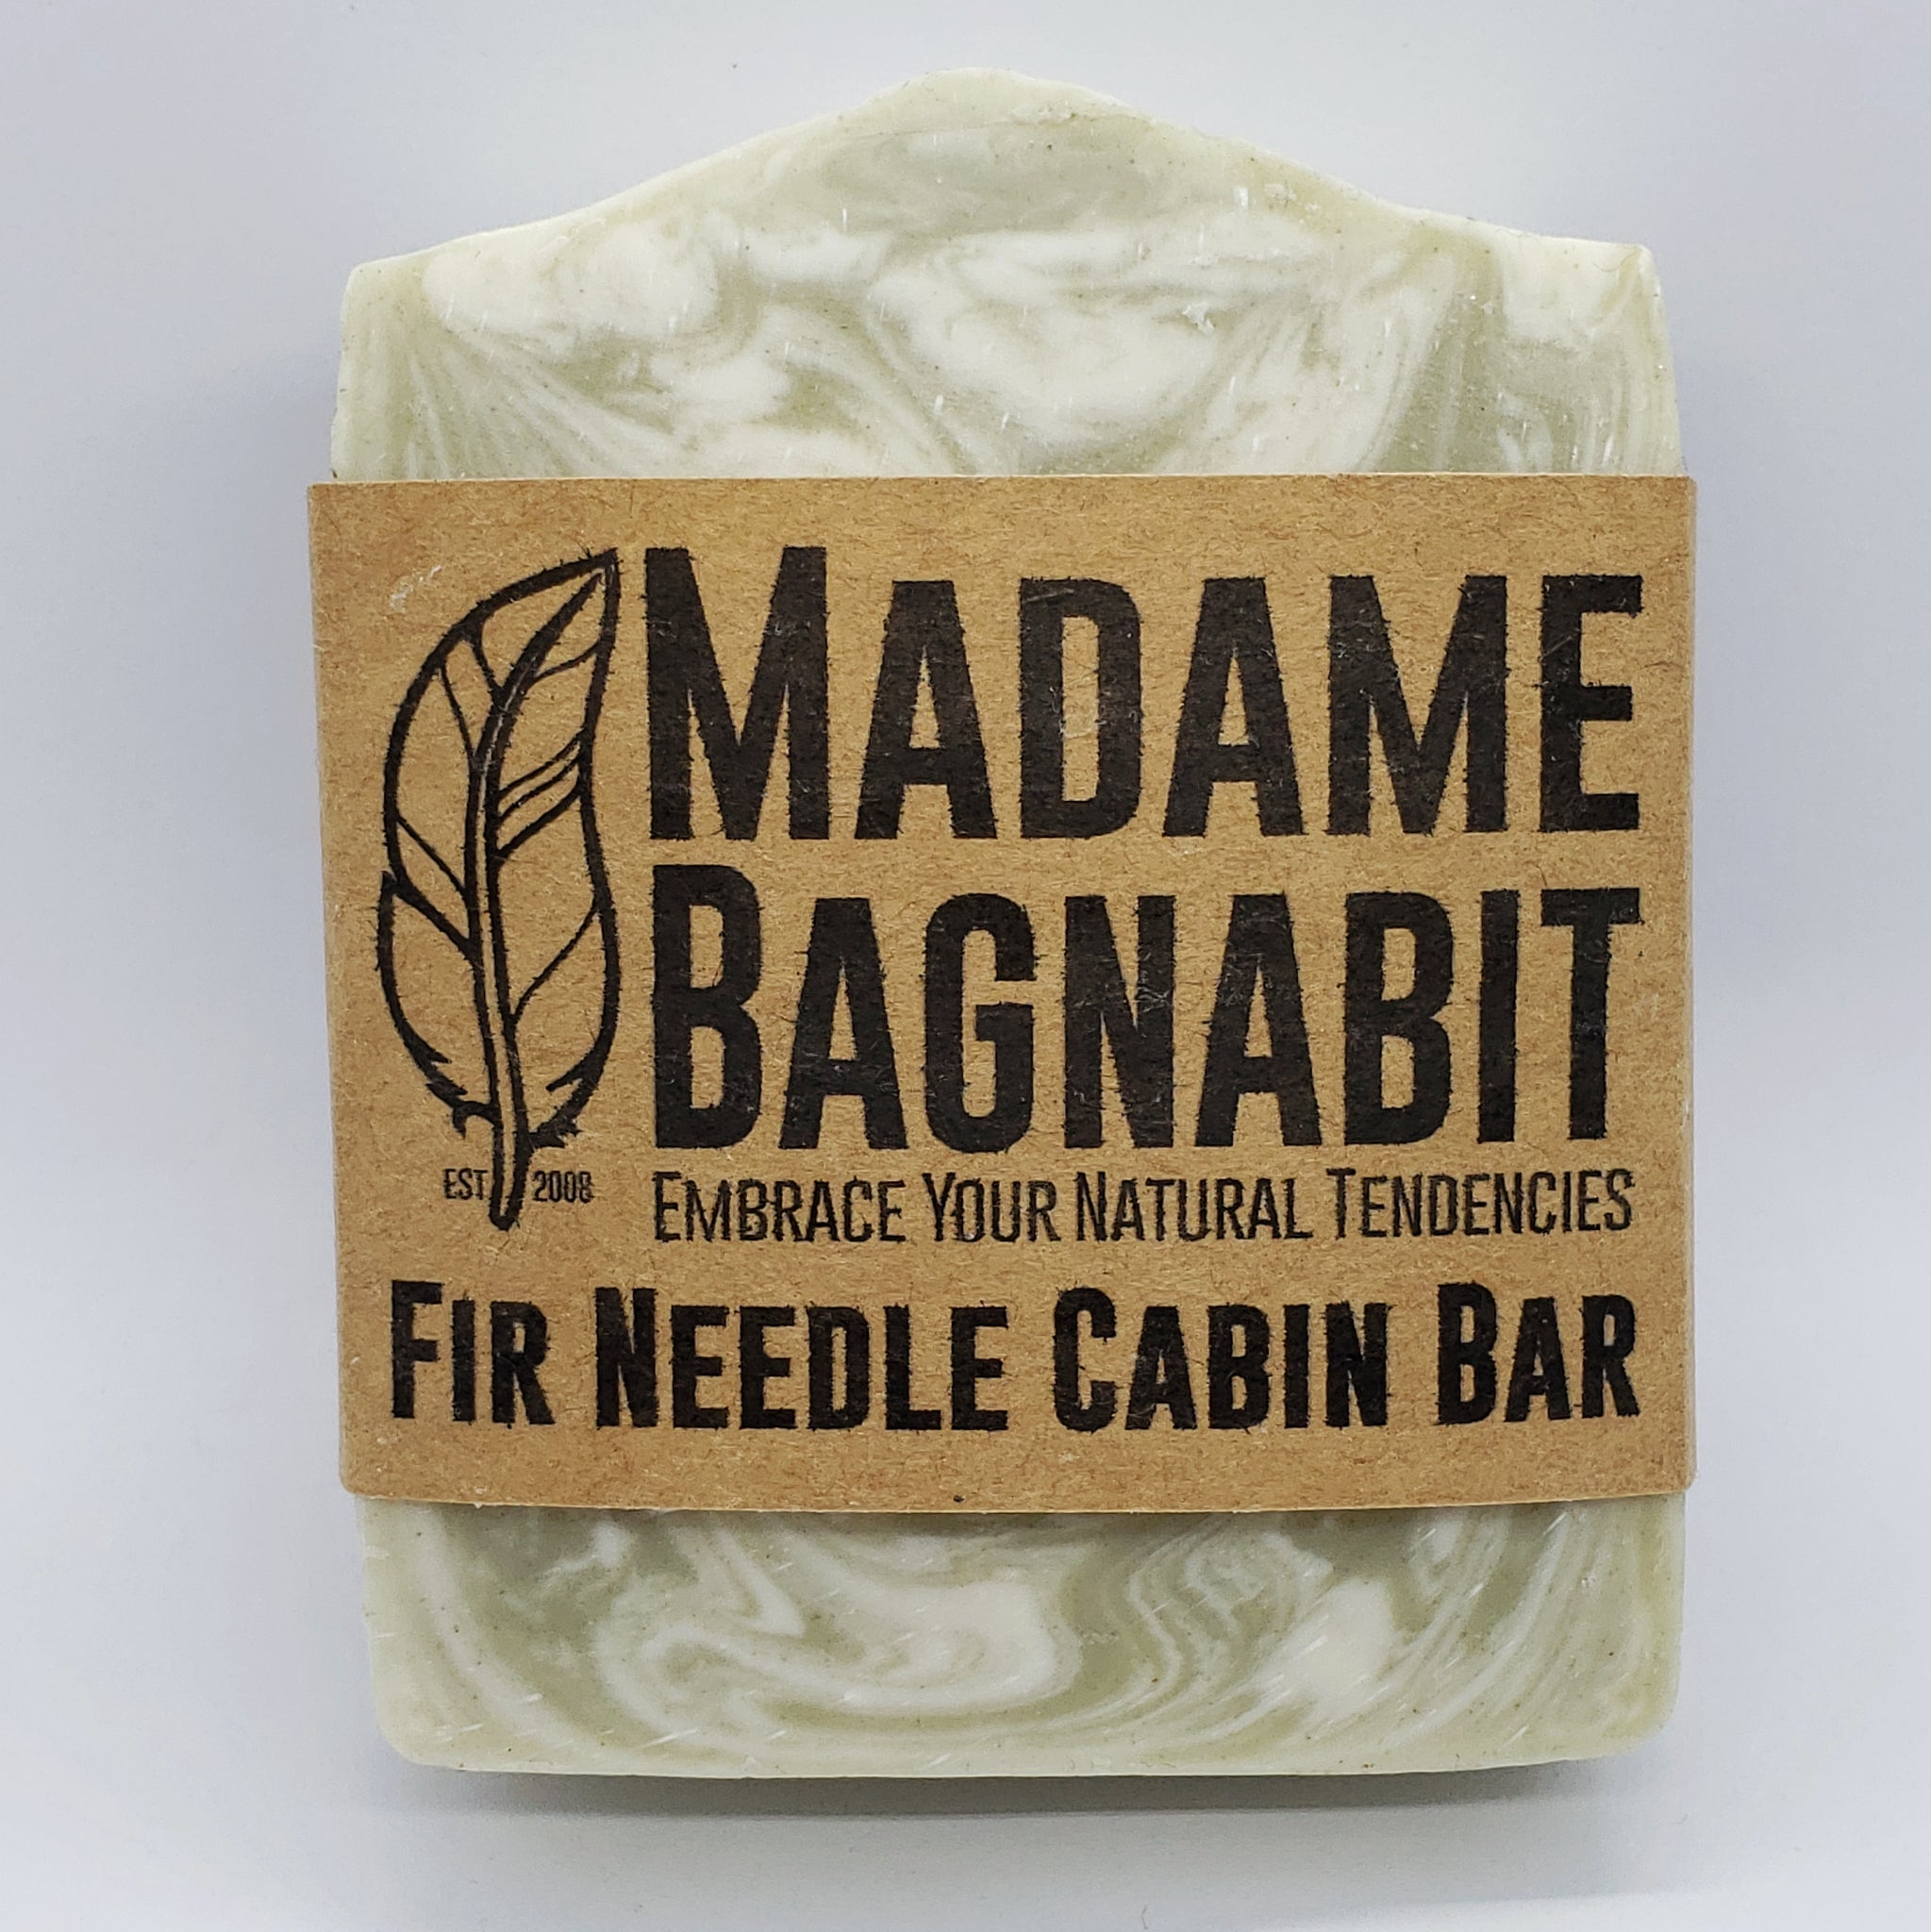 Fir Needle Cabin Bar soap